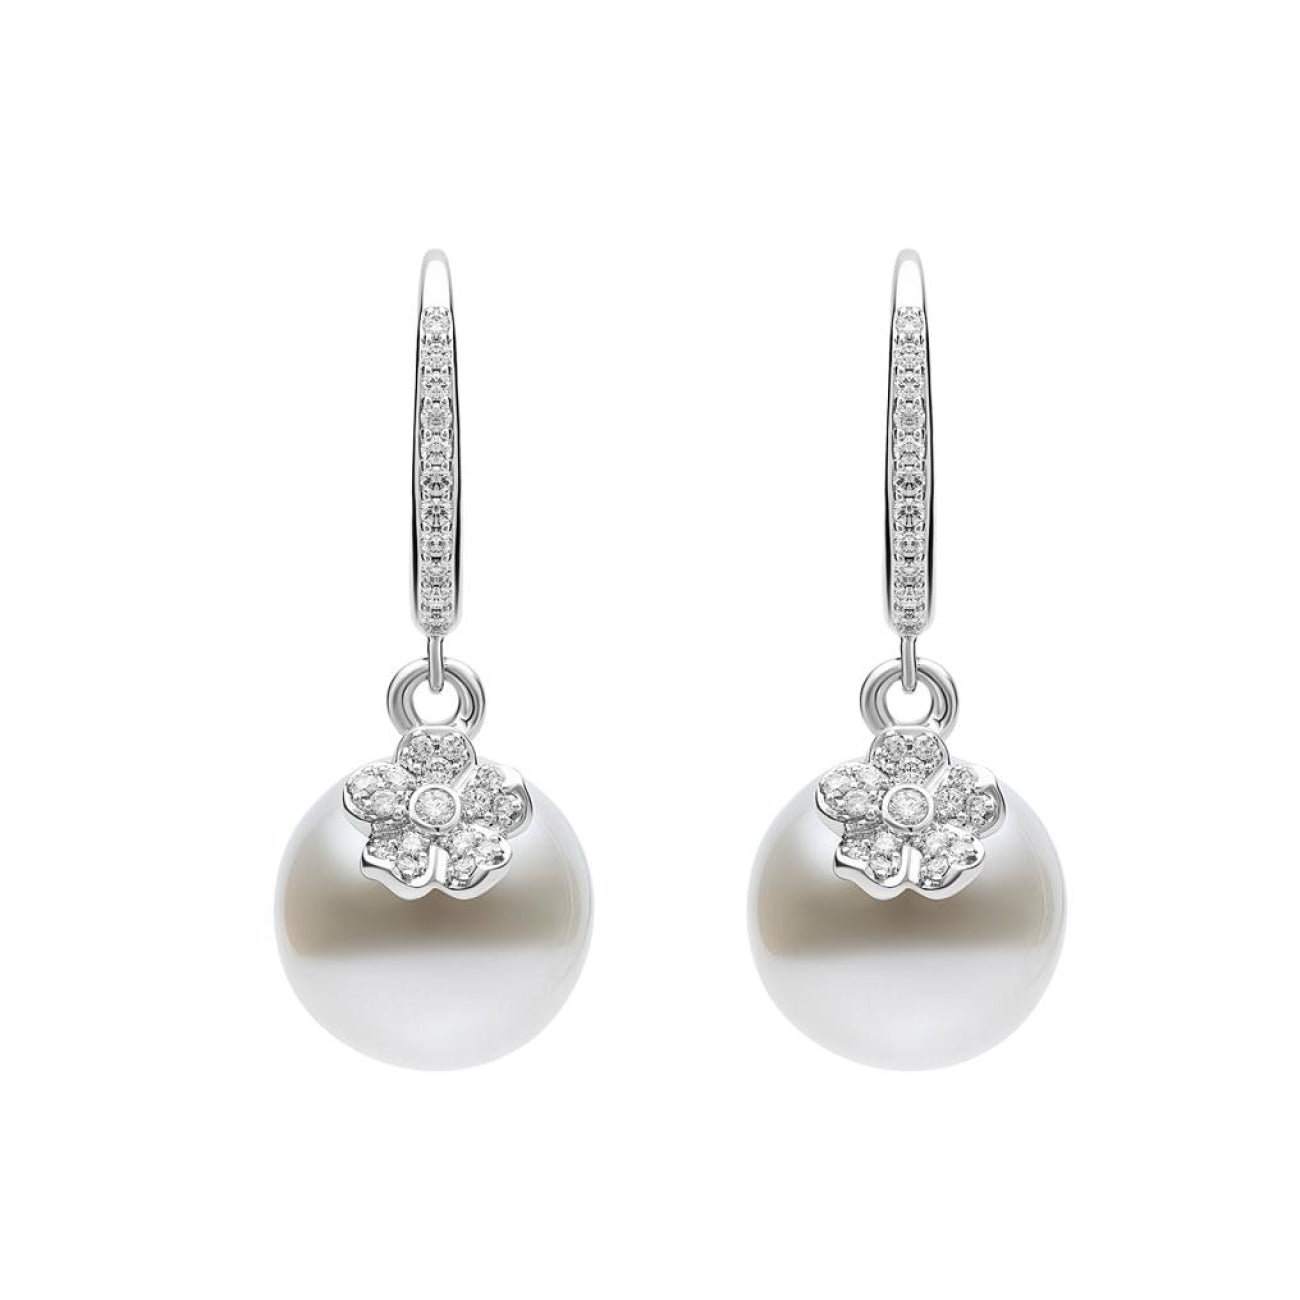 Mikimoto Jewelry - MIKIMOTO Cherry Blossom earrings | Manfredi Jewels